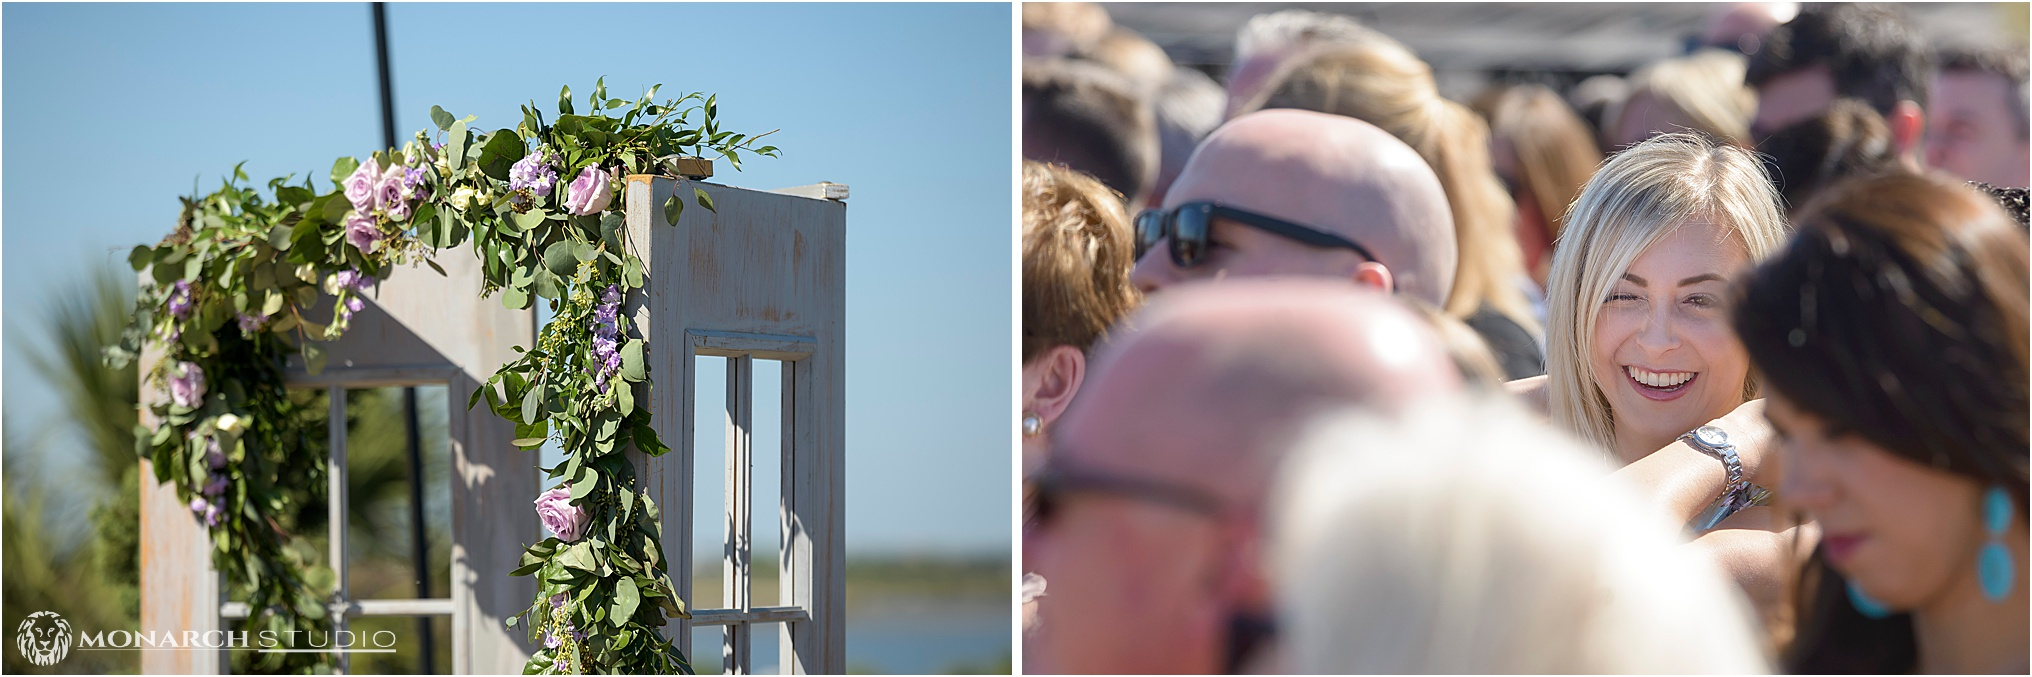 military-wedding-photographer-in-st-augustine-055.jpg